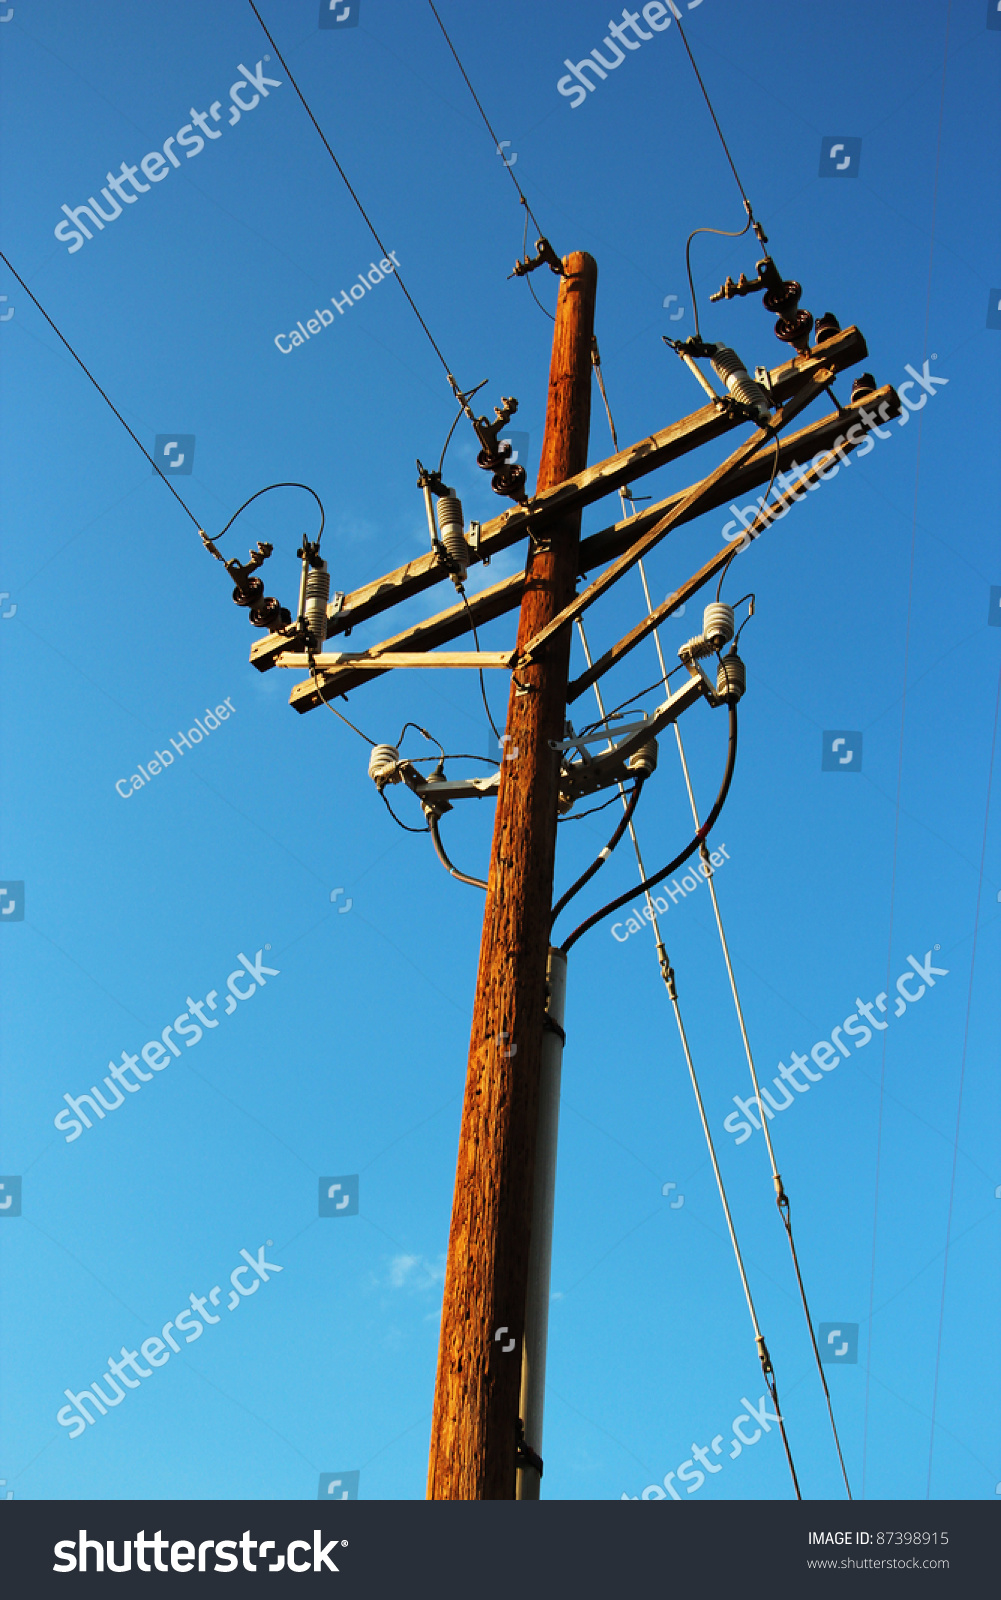 Electric Poles Power Lines : Wooden utility pole power lines stock photo